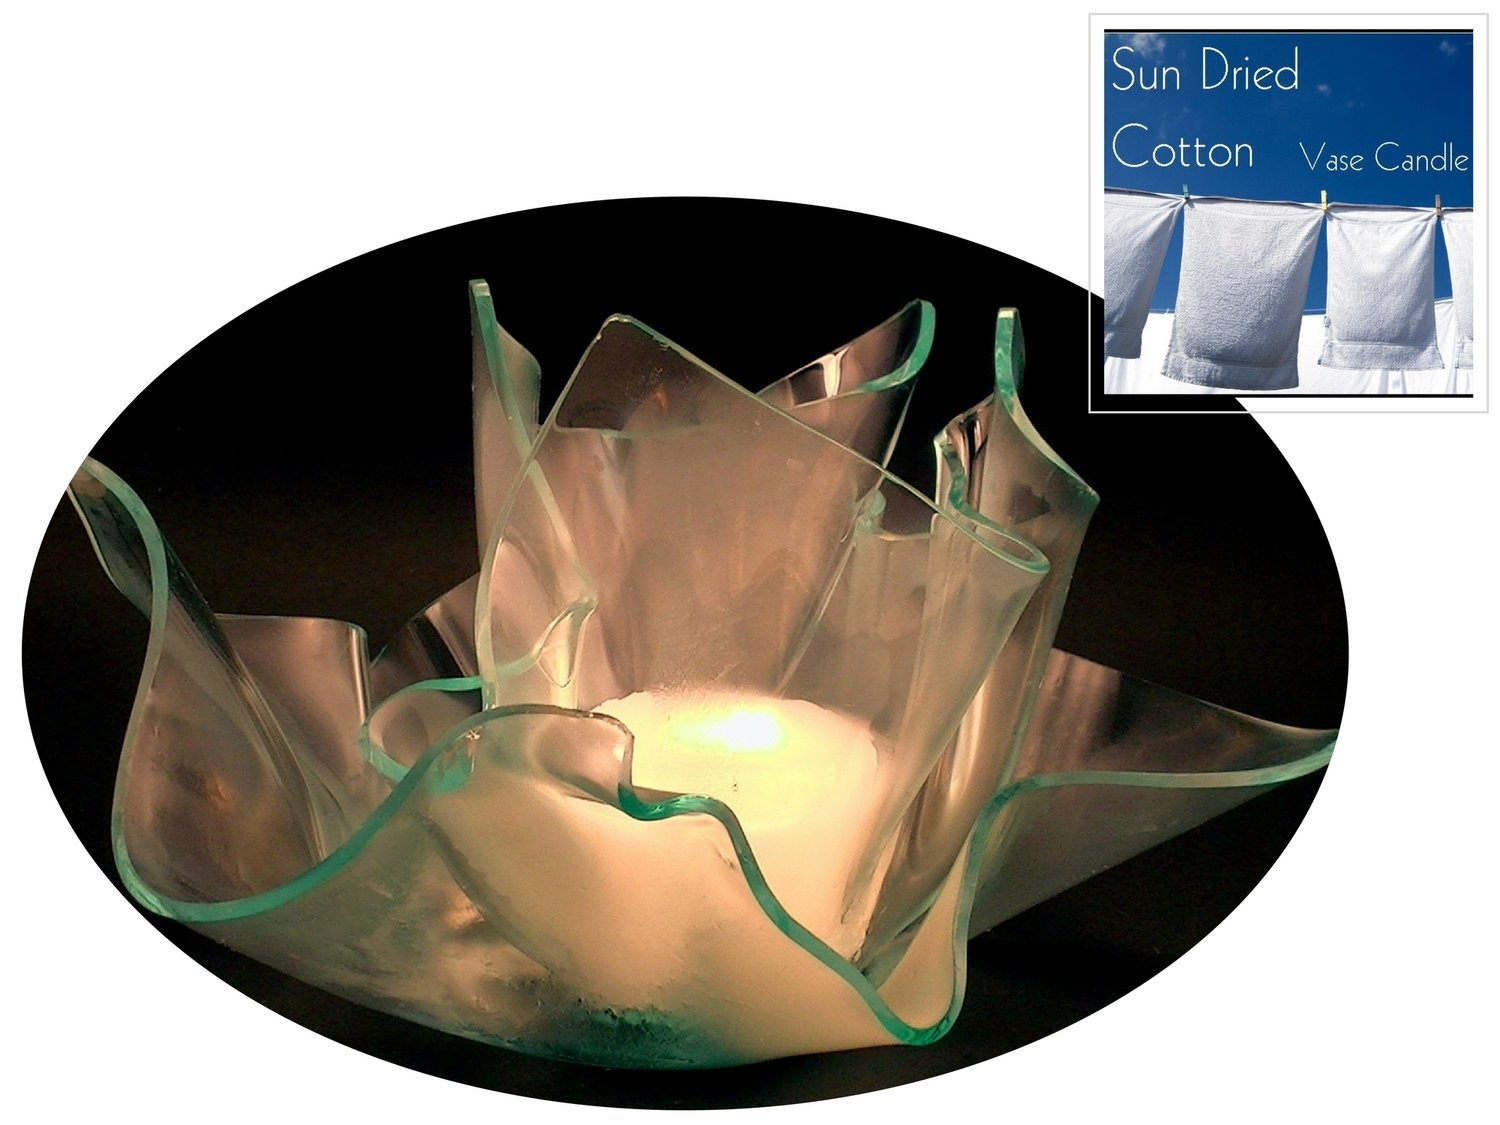 2 Sun Dried Cotton Candle Refills | Clear Satin Vase & Dish Set